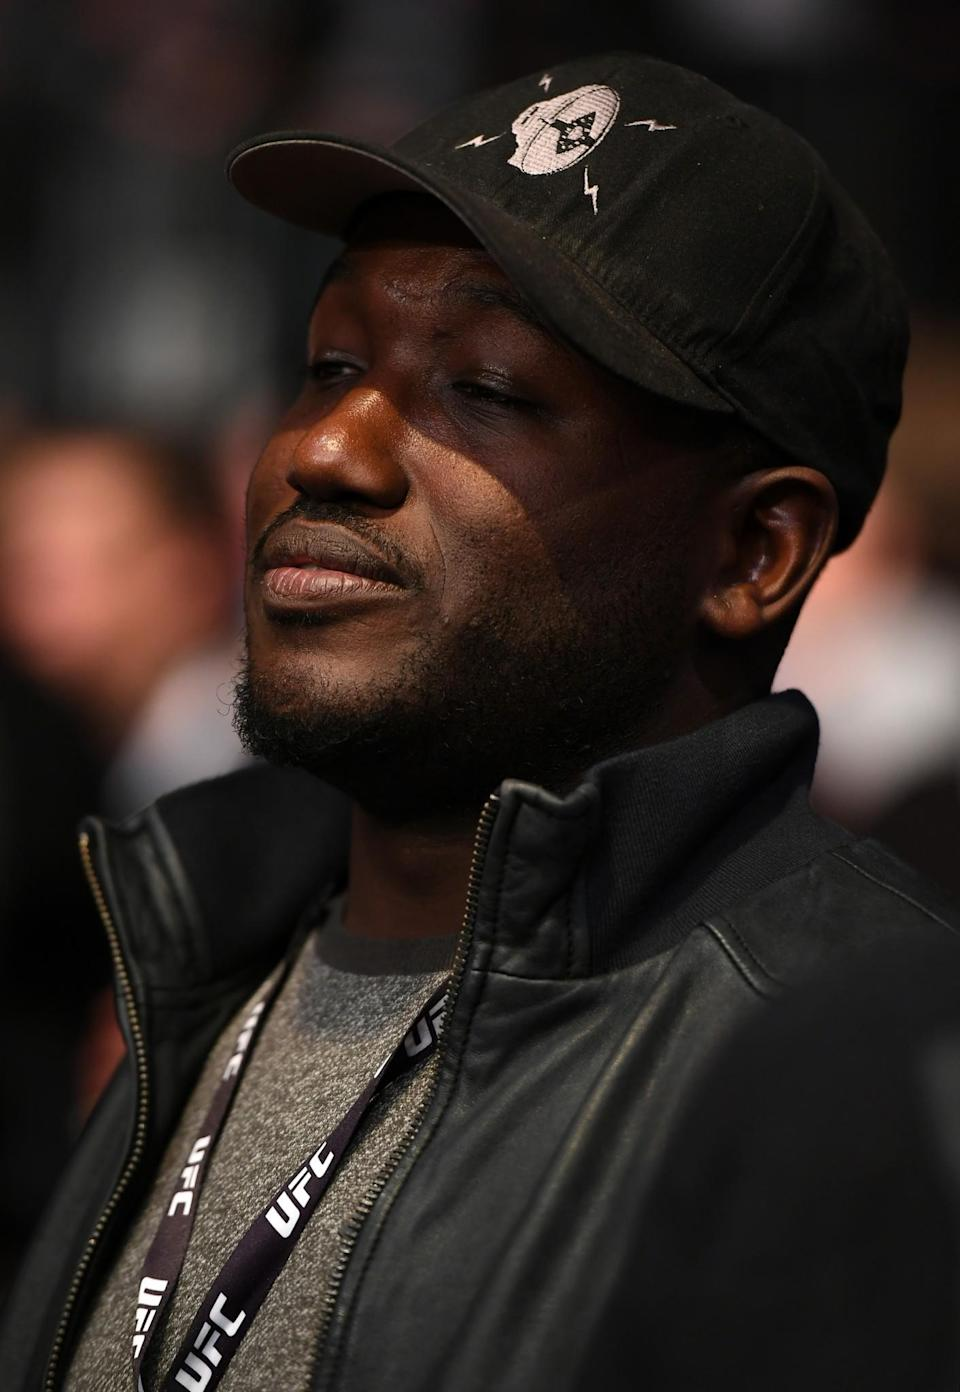 <p>Comedian Hannibal Buress watches the middleweight bout between Chris Weidman of the United States and Yoel Romero of CubYoel Romero of Cubaduring the UFC 205 event at Madison Square Garden on November 12, 2016 in New York City. (Photo by Jeff Bottari/Zuffa LLC/Zuffa LLC via Getty Images) </p>